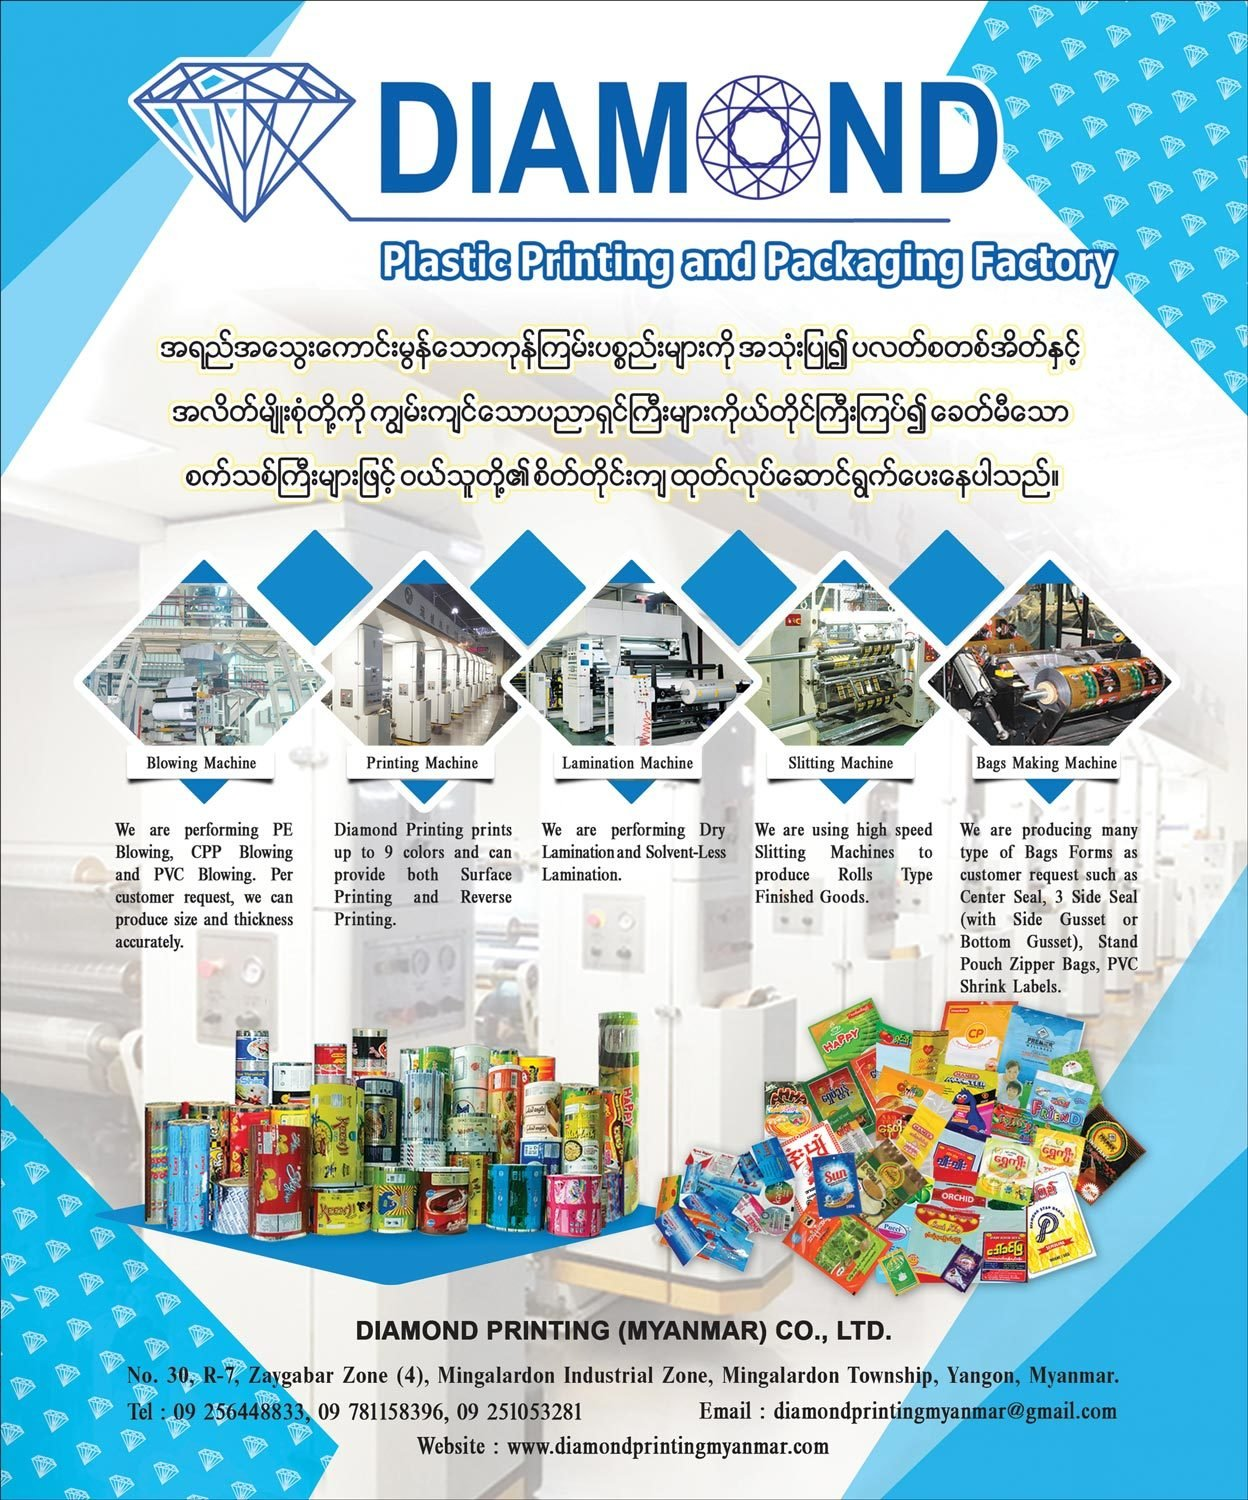 Diamond-Printing_Plastic-Materials-&-Products_1256.jpg